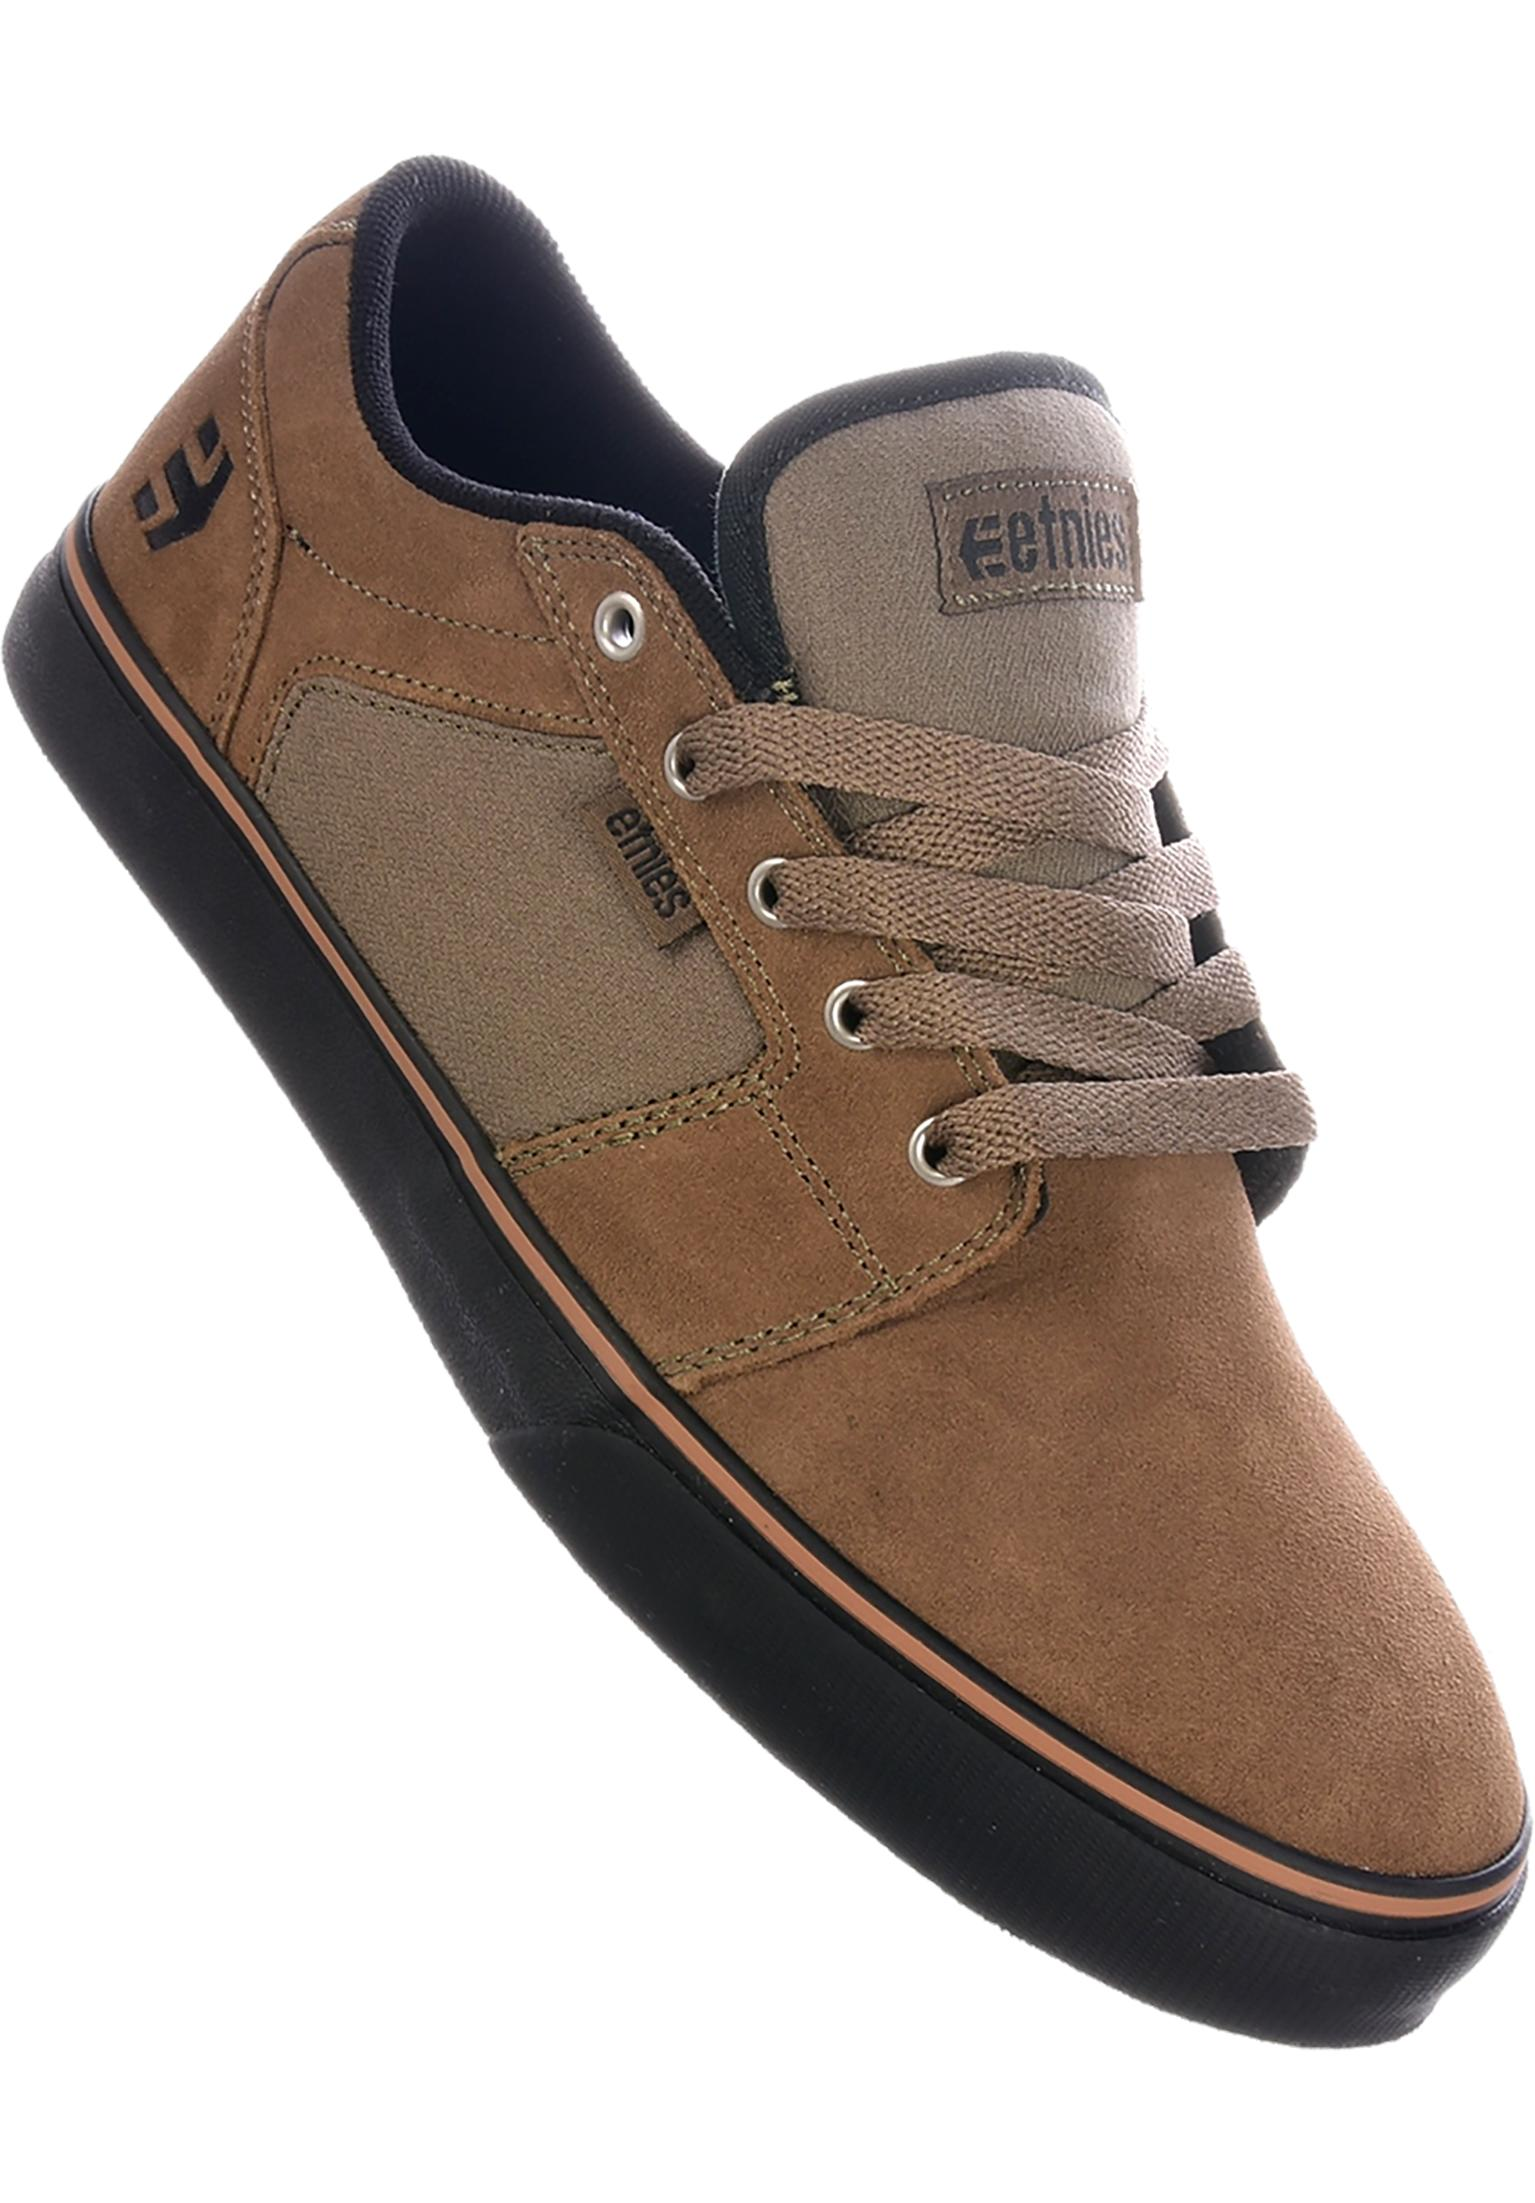 Online Schuheamp; Skate Sneakers KaufenTitus Skate Sneakers Schuheamp; Online tdrsCQh